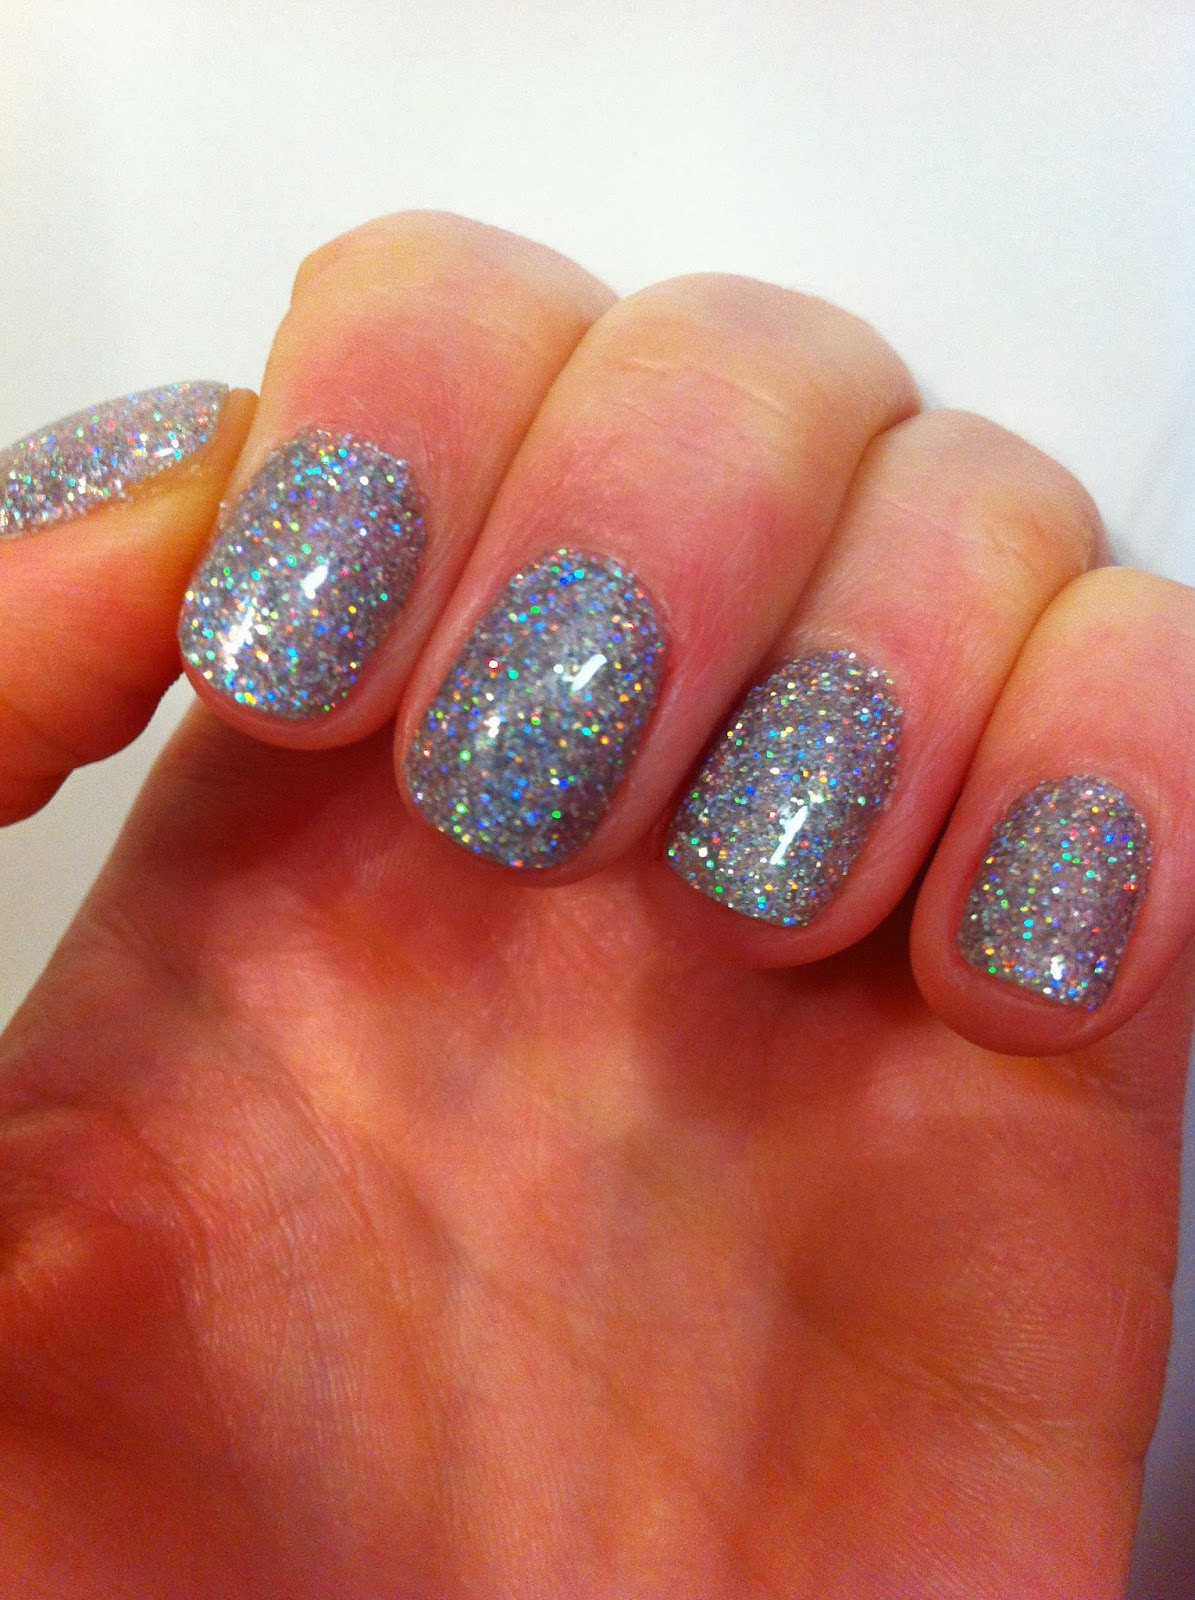 Beauty Box: Glitter Gel Manicure